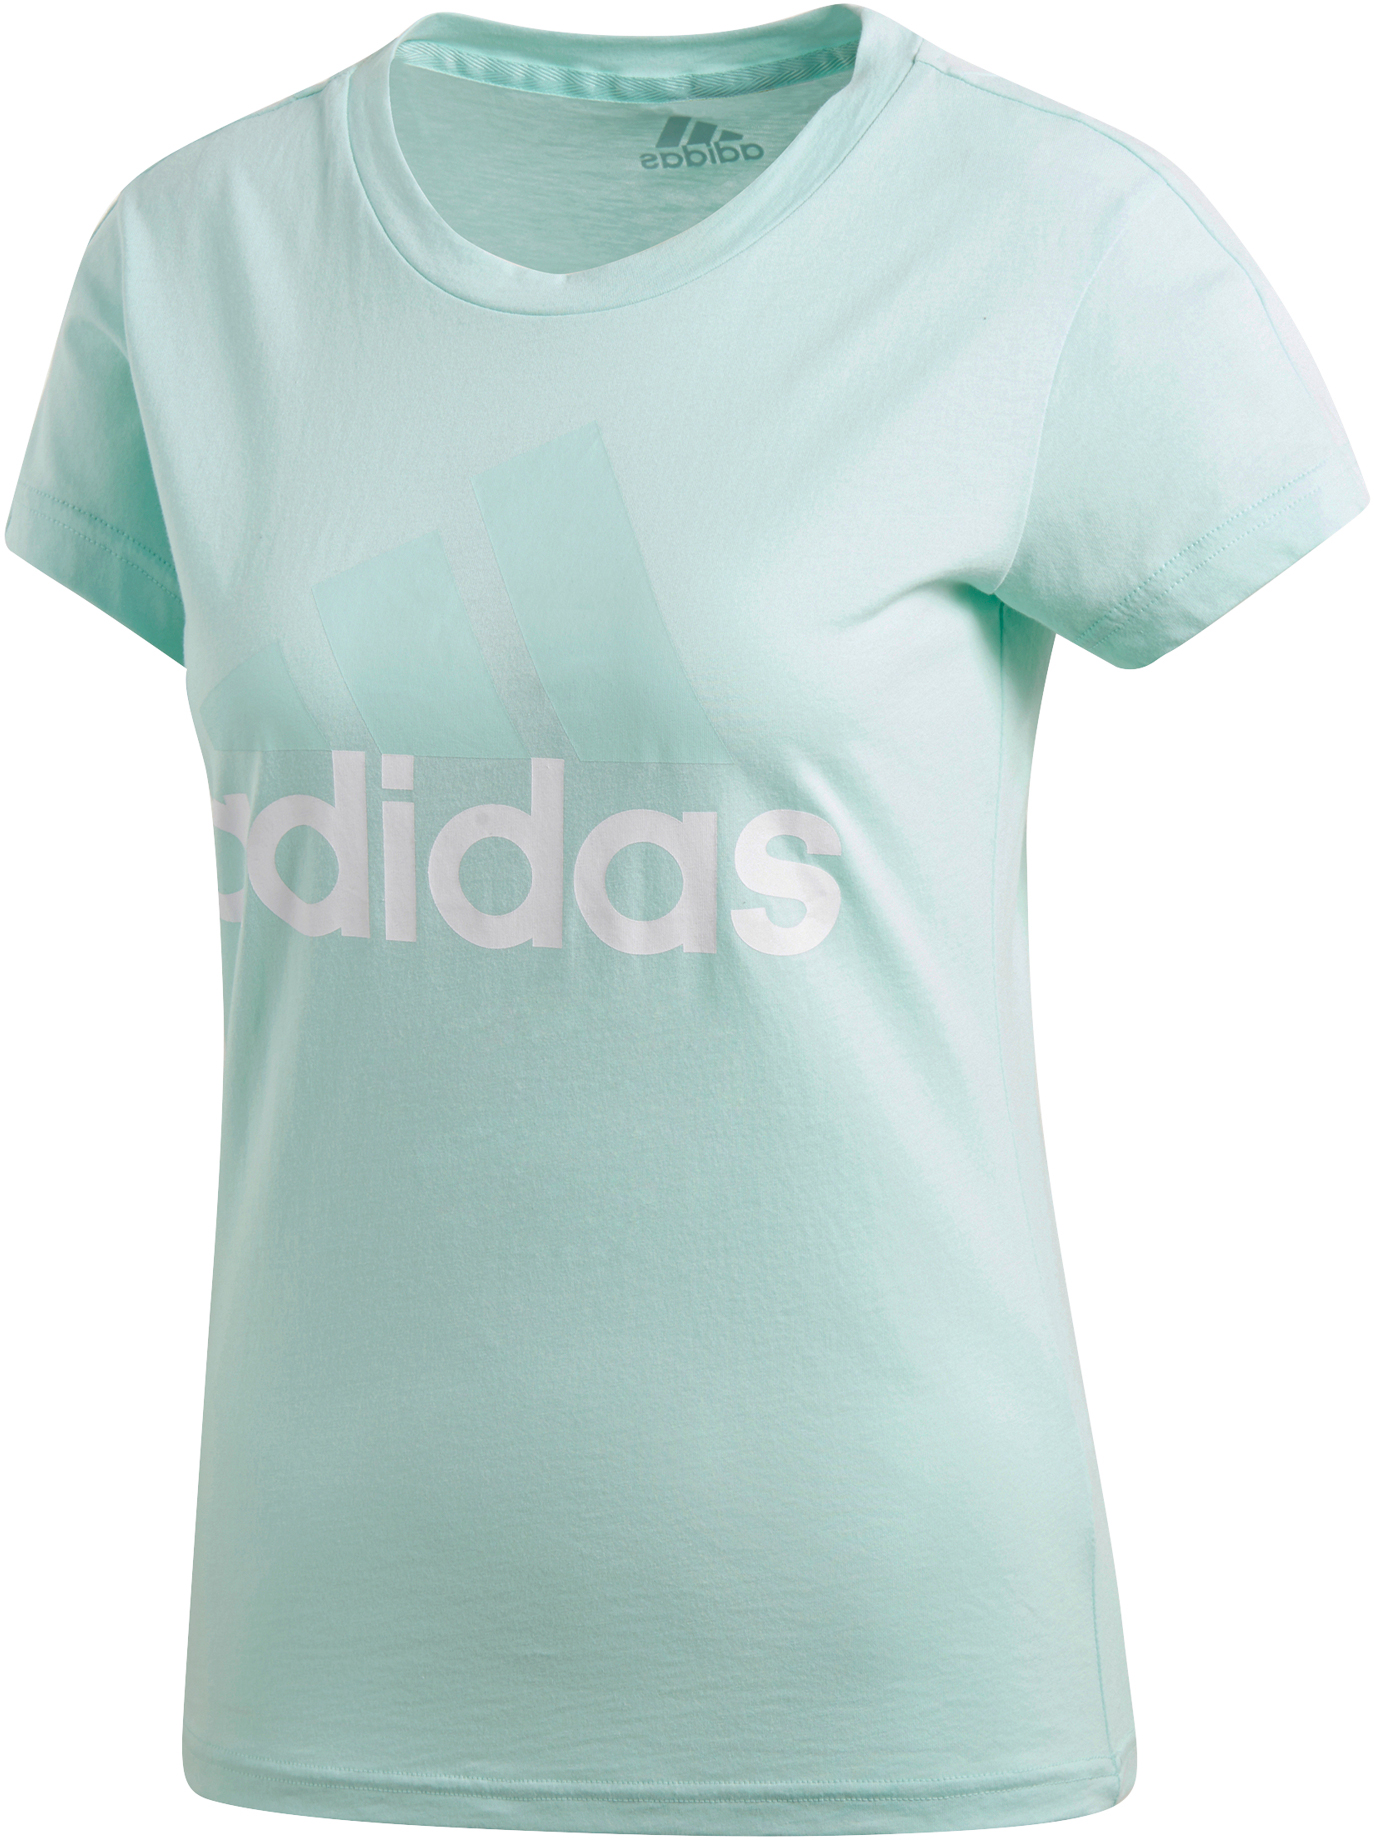 adidas t shirt dam Sale. Up to 36% Off. Free Shipping & Returns